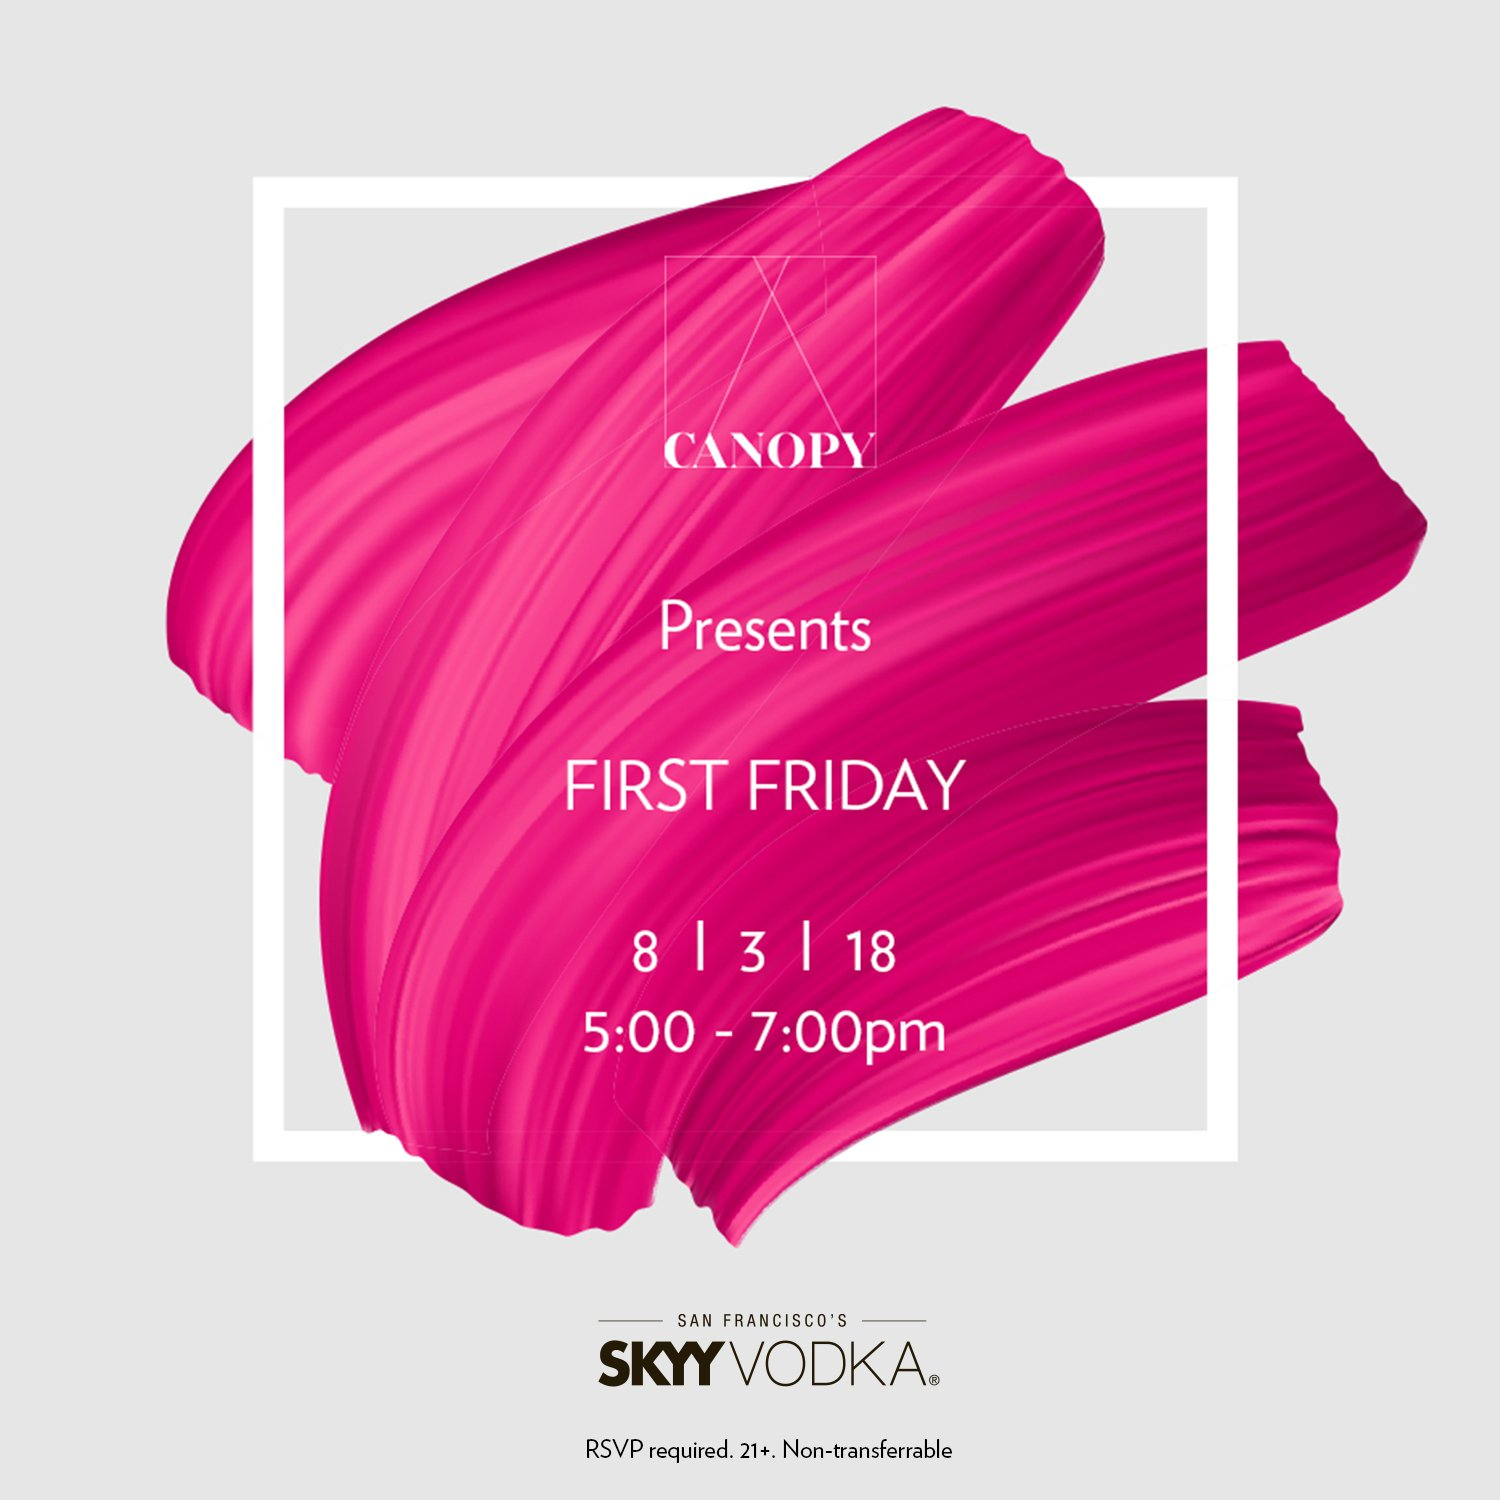 CANOPY Hosts First Friday